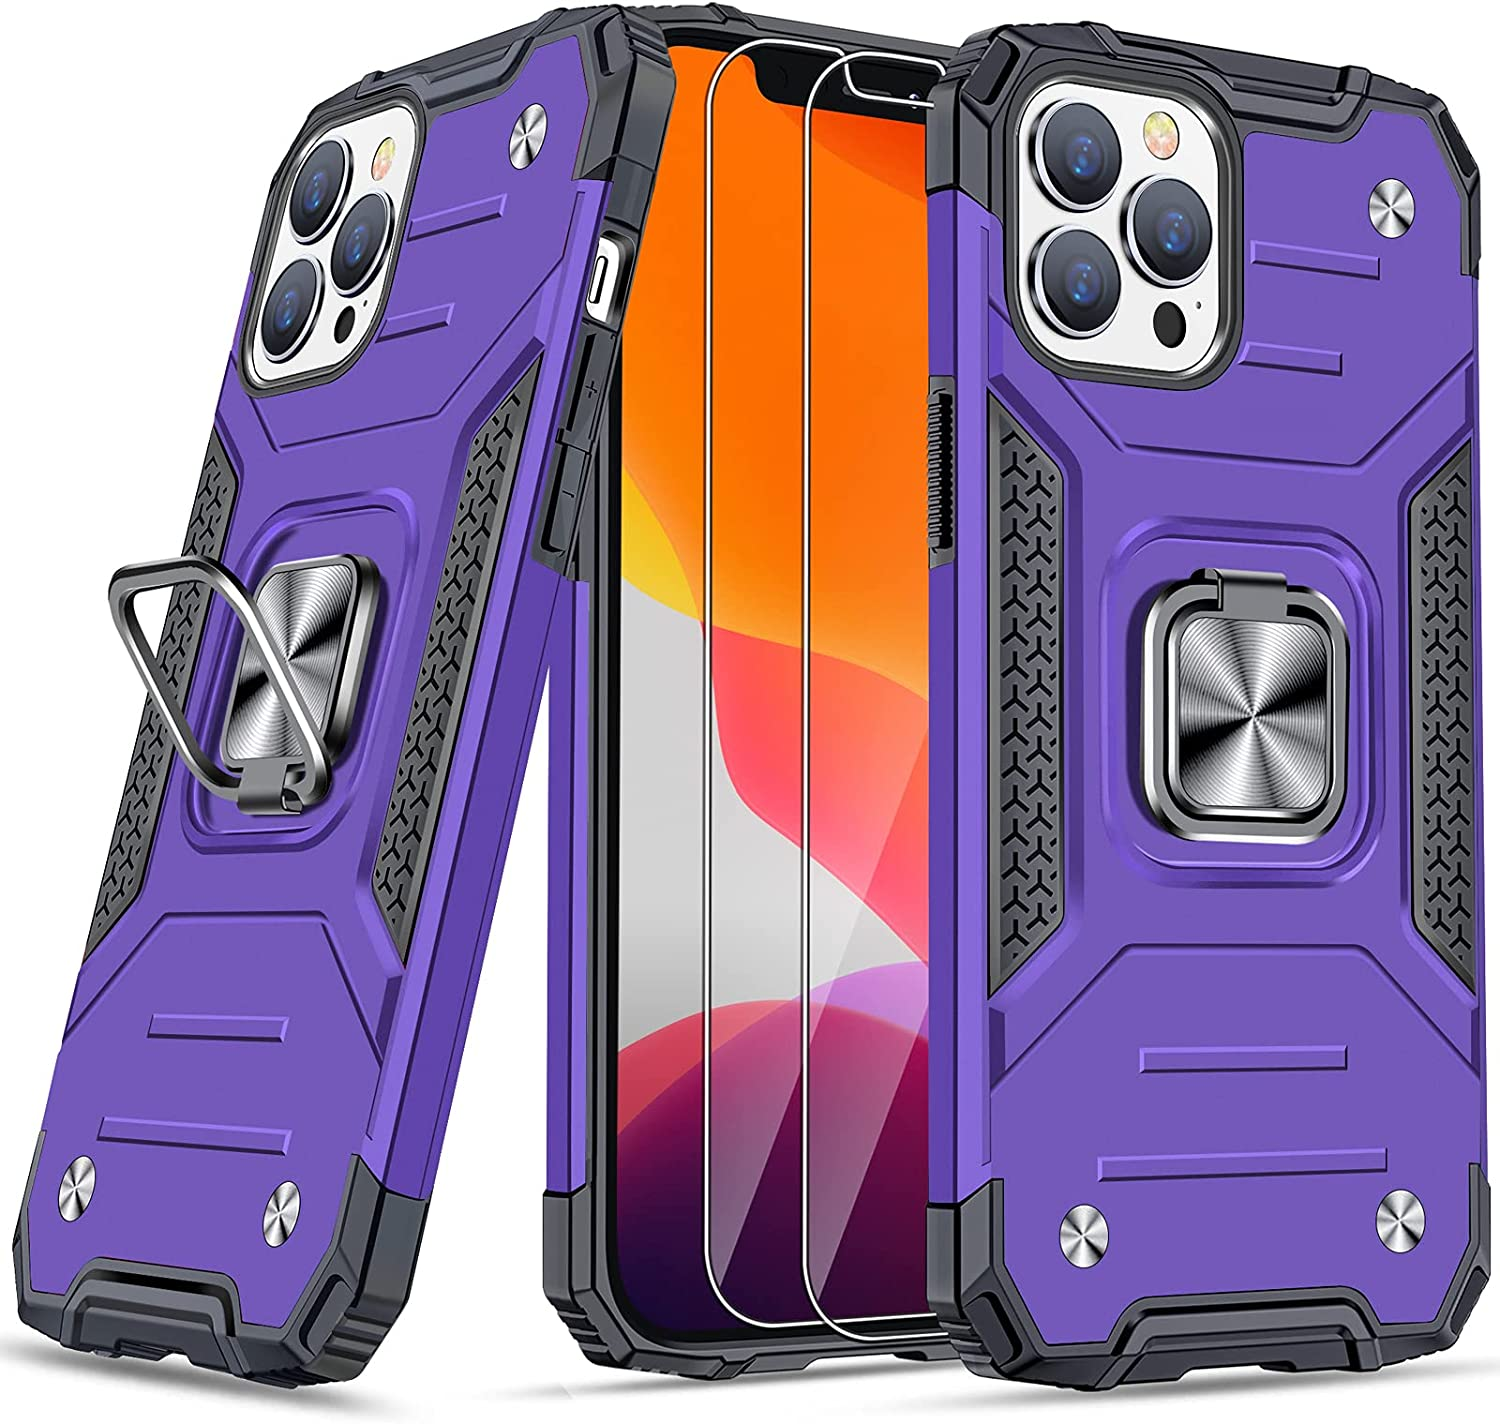 """JAME Case for iPhone 12 Pro Max Case with Screen Protectors 2Pcs, Military-Grade Drop Protection Cover, Protective Phone Cases, with Ring Kickstand, Bumper Case for iPhone 12 Pro Max 6.7"""" Purple"""